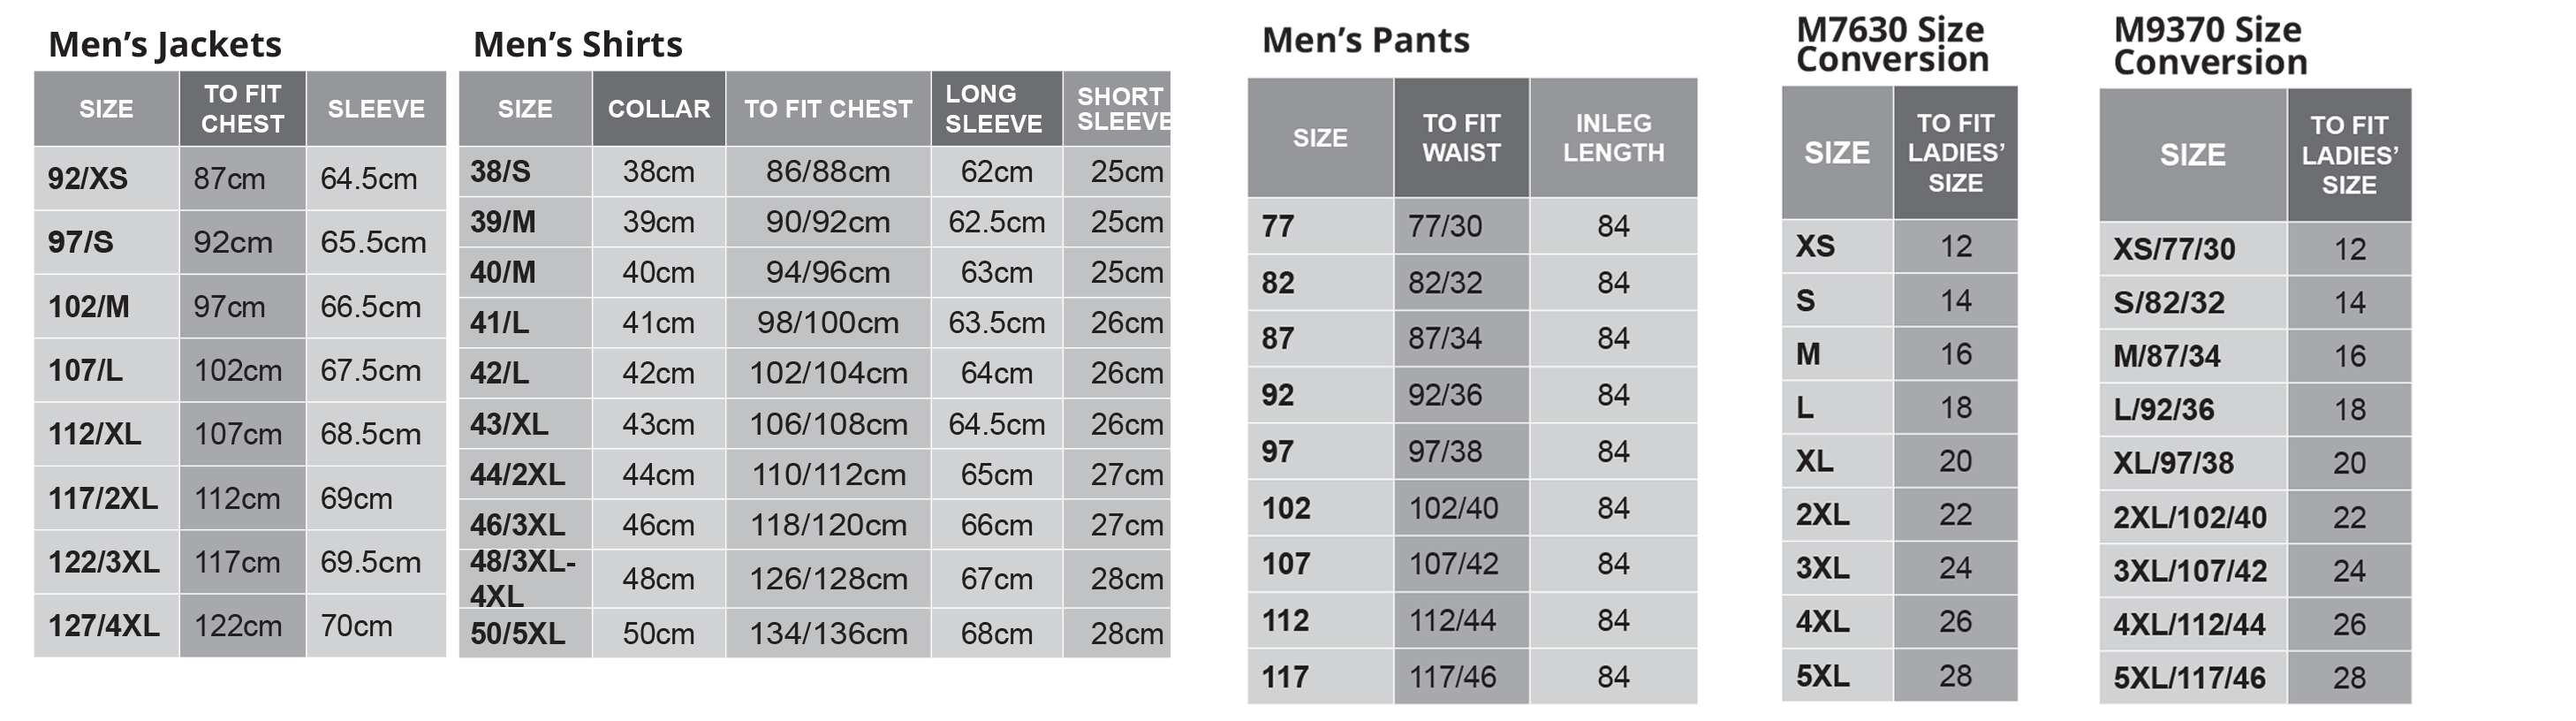 mens-sizing-updated.png